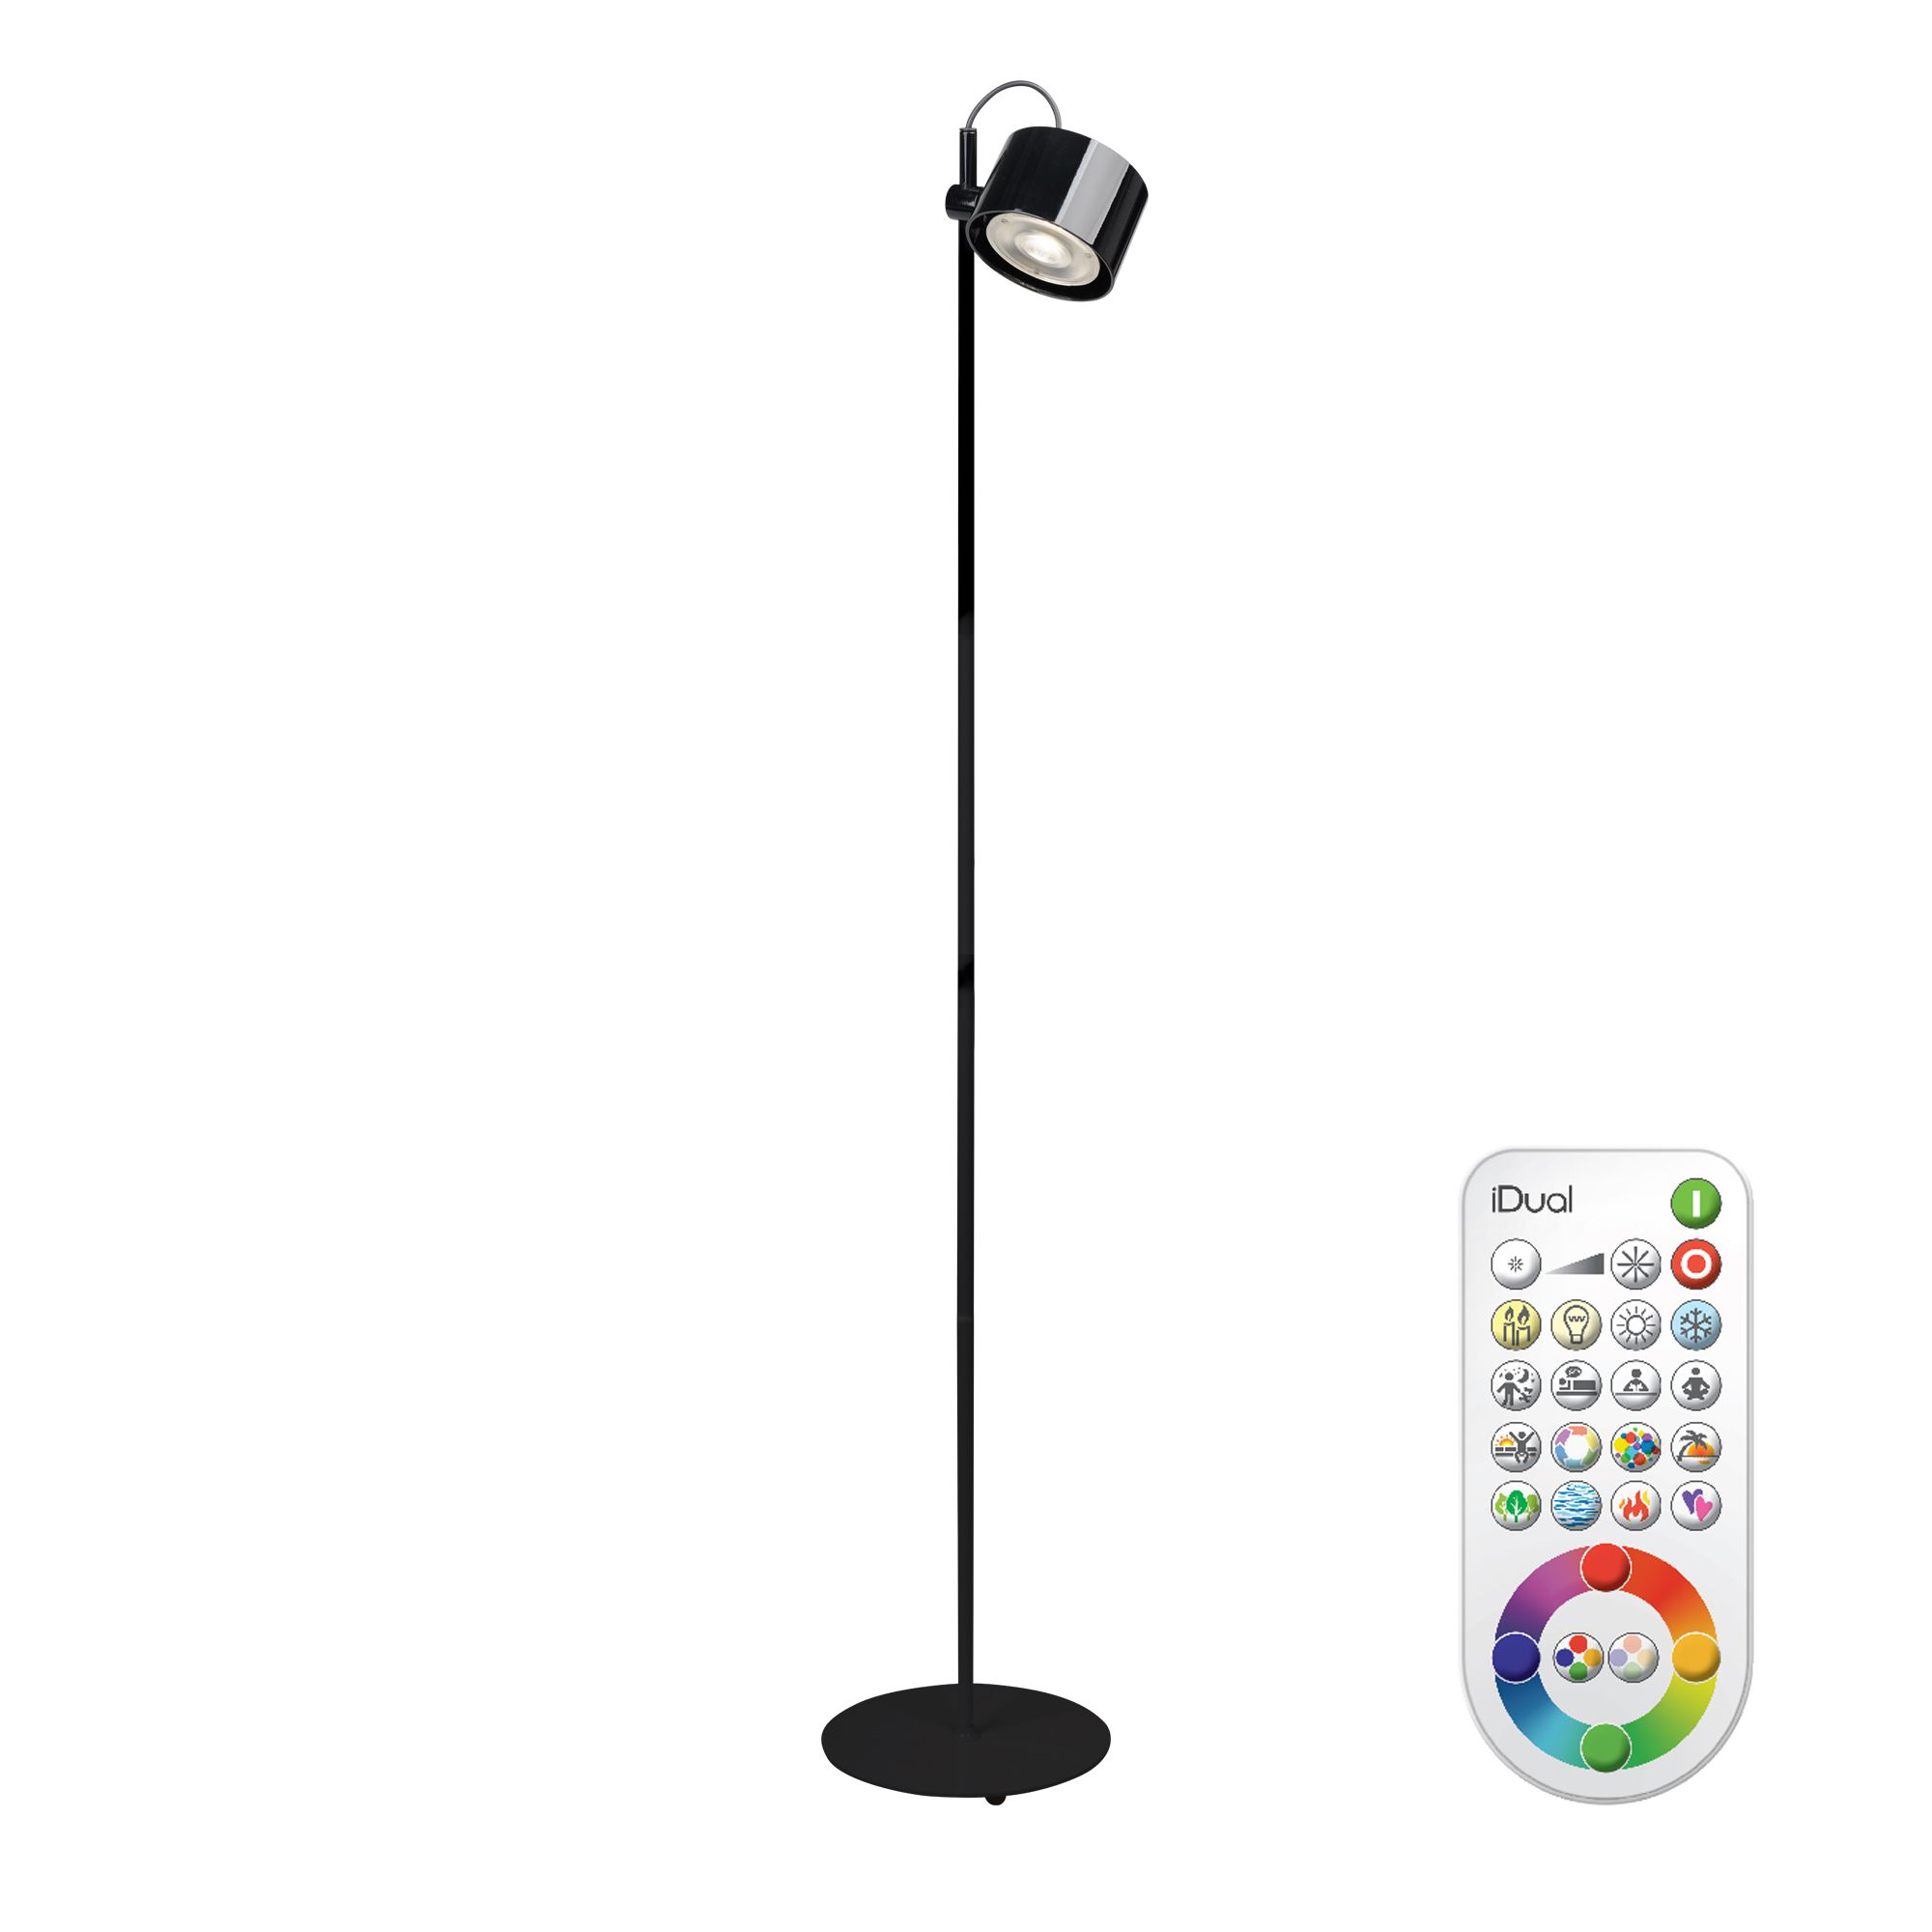 idual jasmine black gloss floor lamp with remote. Black Bedroom Furniture Sets. Home Design Ideas